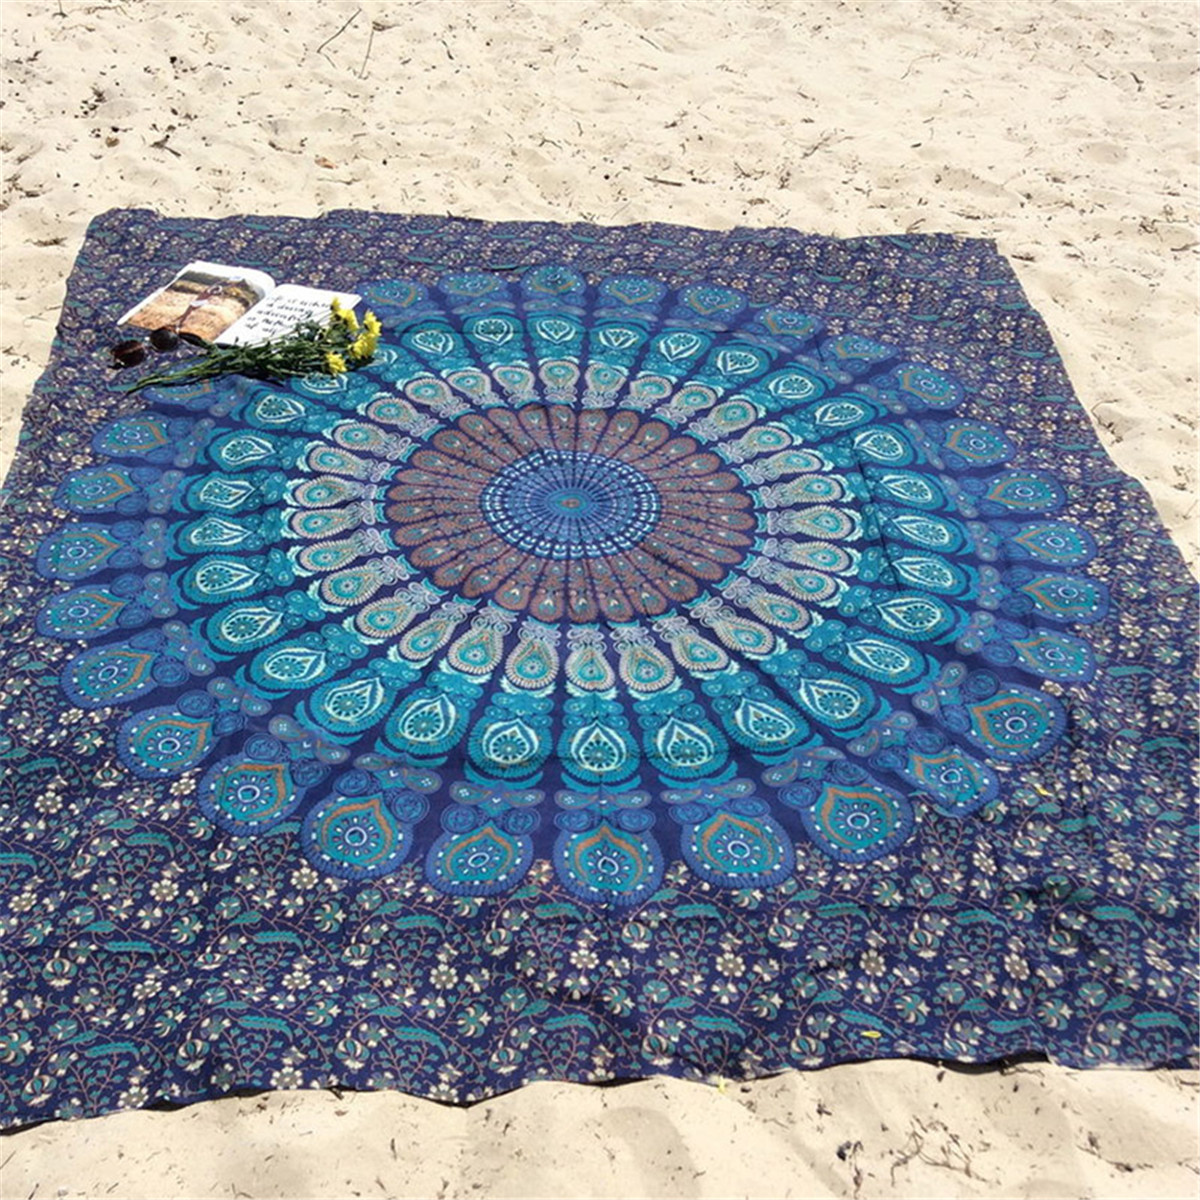 New Indian Mandala Peacock Printed Tapestry Wall Hanging Hippie Boho Table Cloth Beach Throw Towel Yoga Mat Home Decor 210*148cm